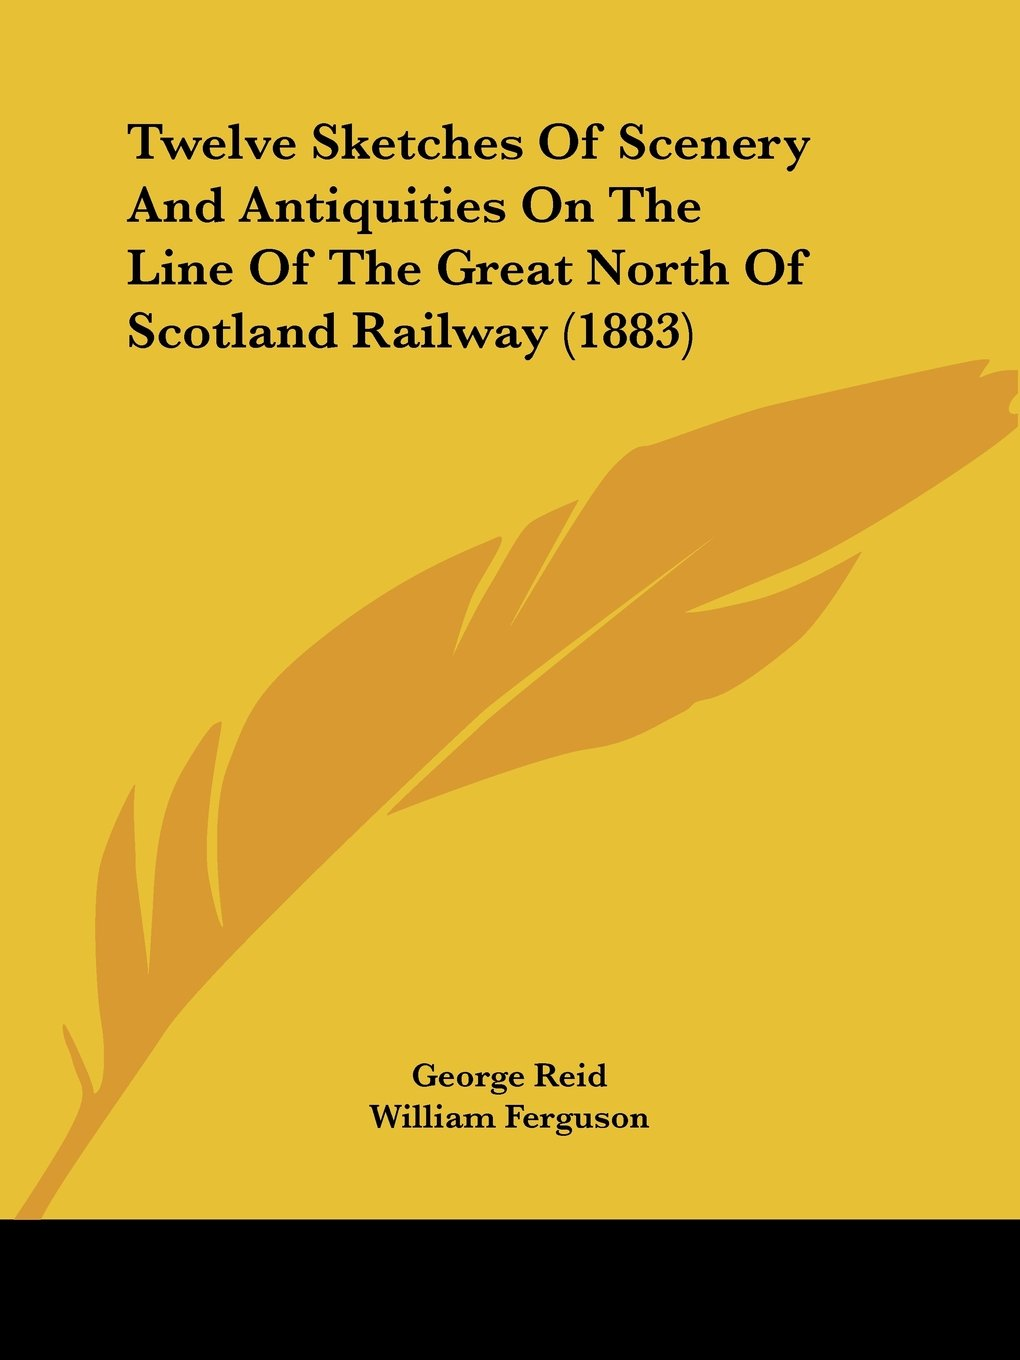 Download Twelve Sketches Of Scenery And Antiquities On The Line Of The Great North Of Scotland Railway (1883) PDF